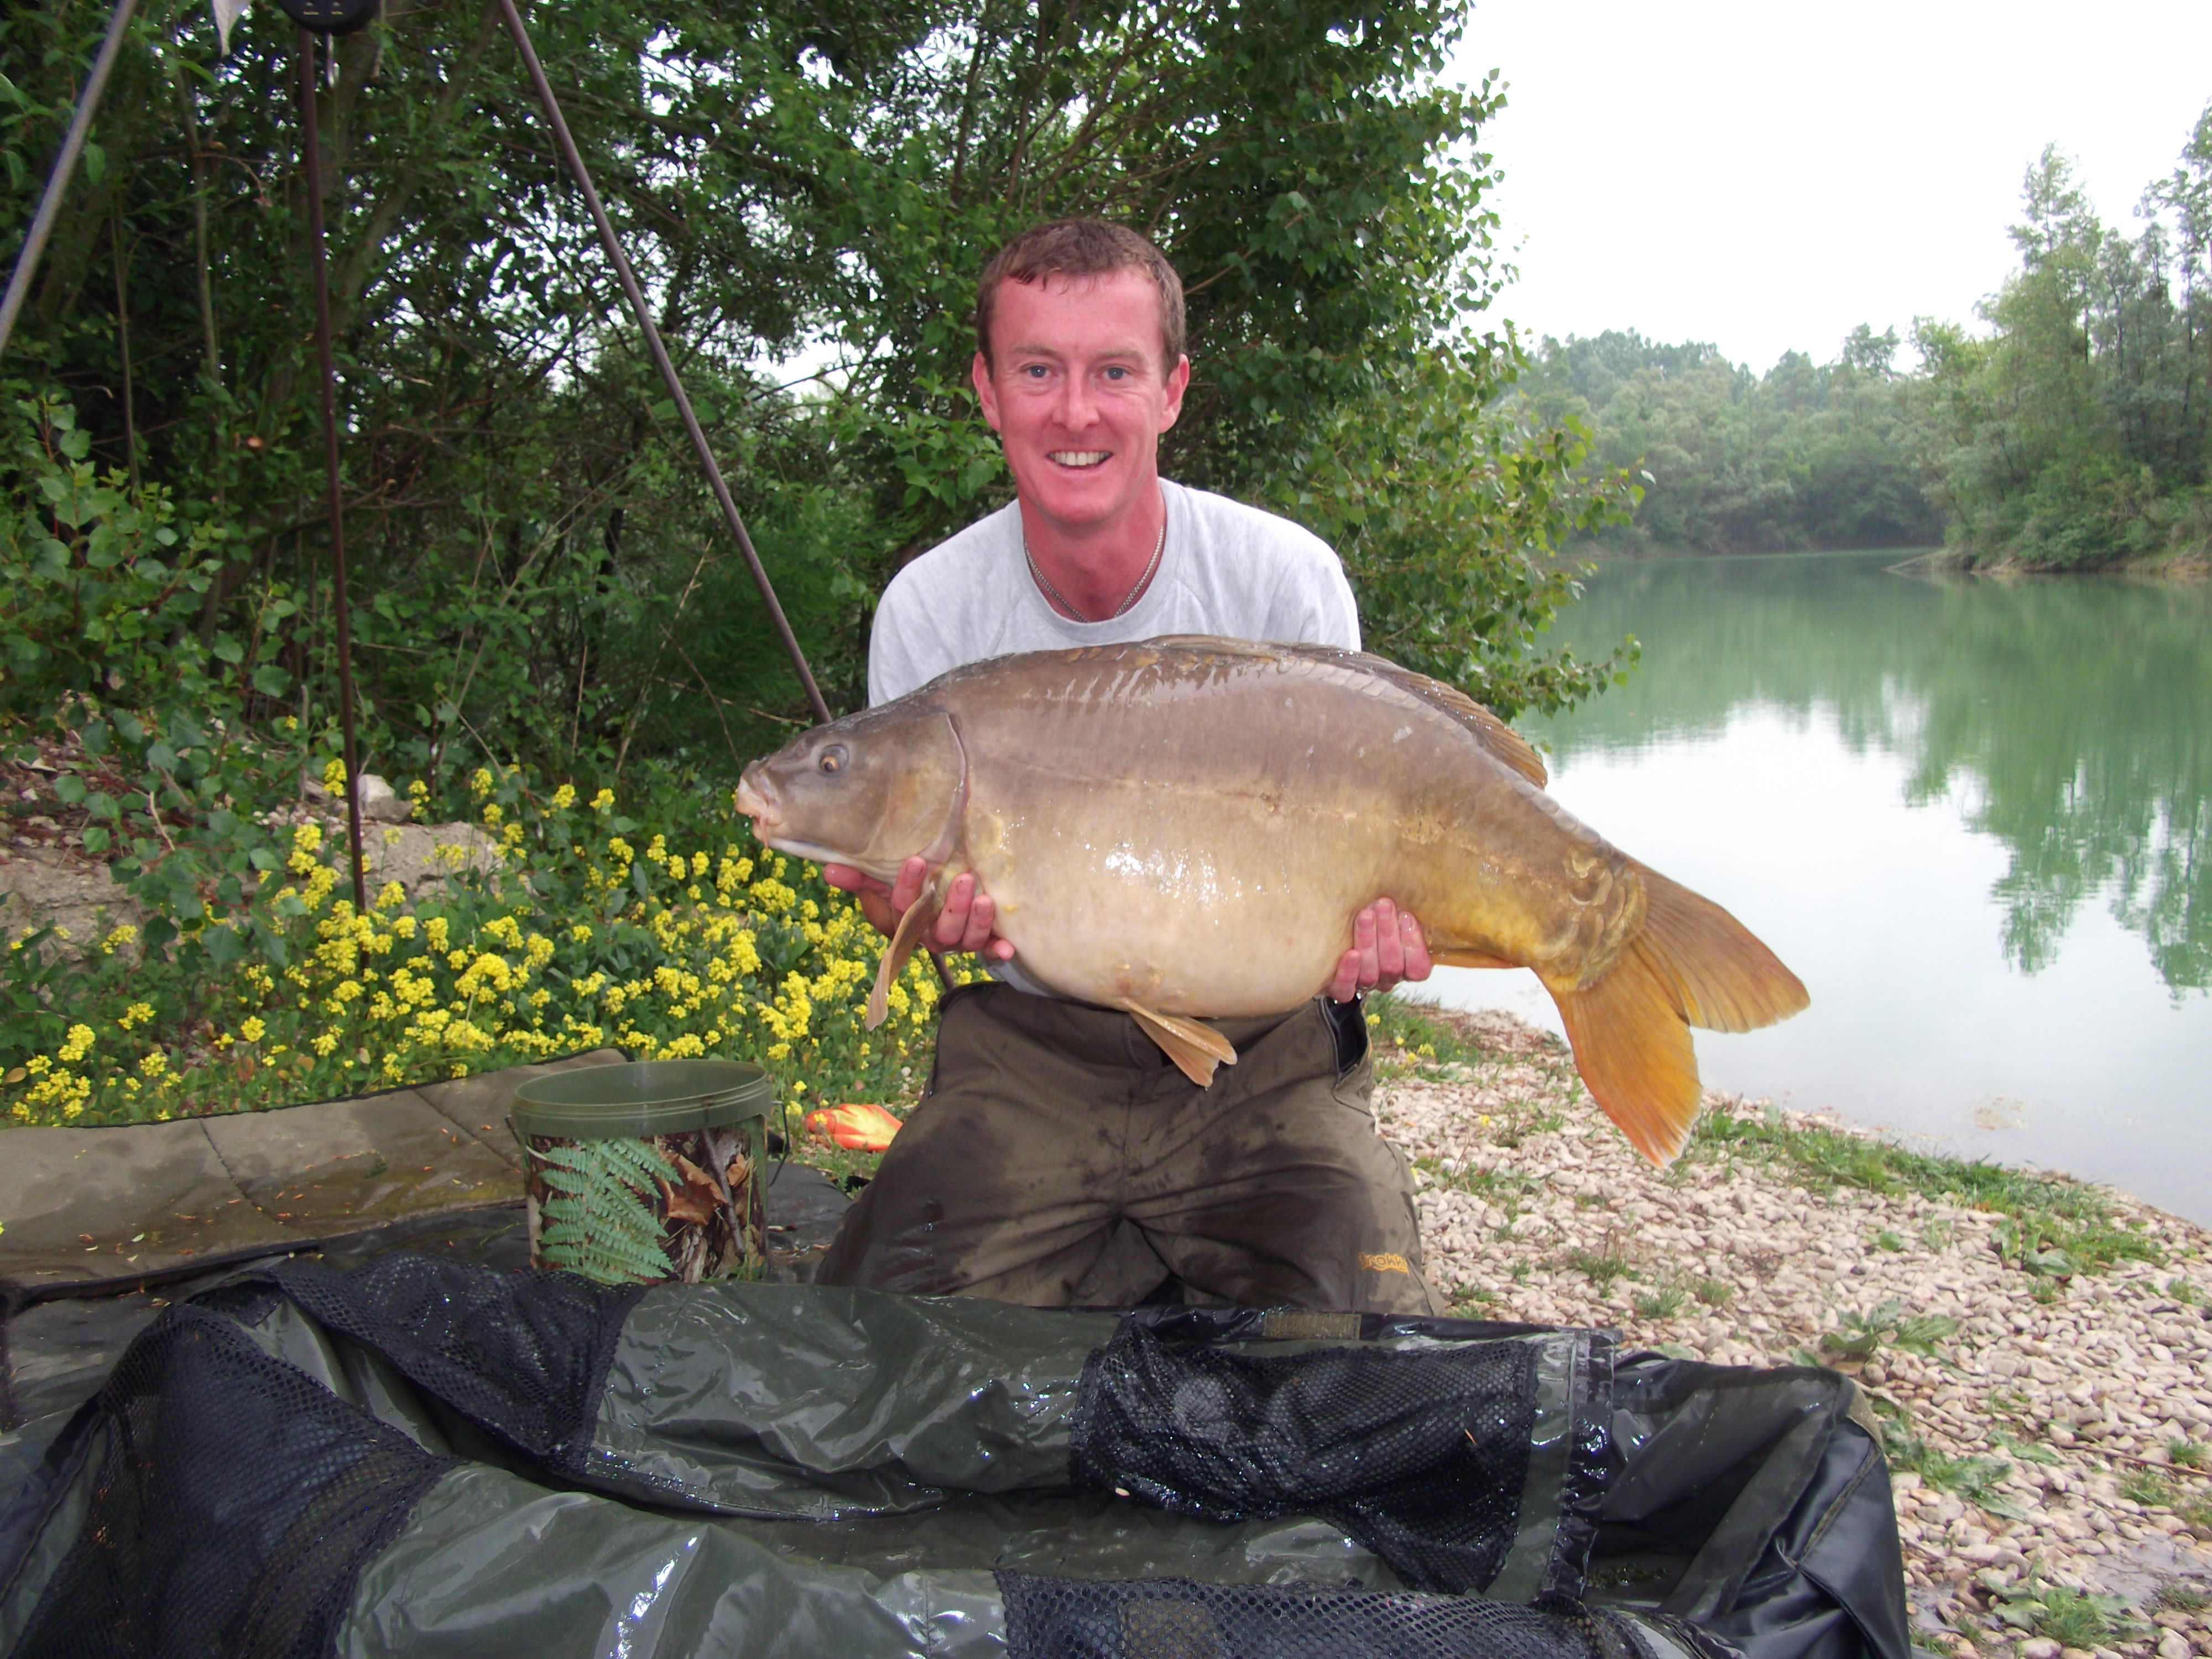 Steves 34lb 3oz  using AS Baits -  FEC Mix from Poachers